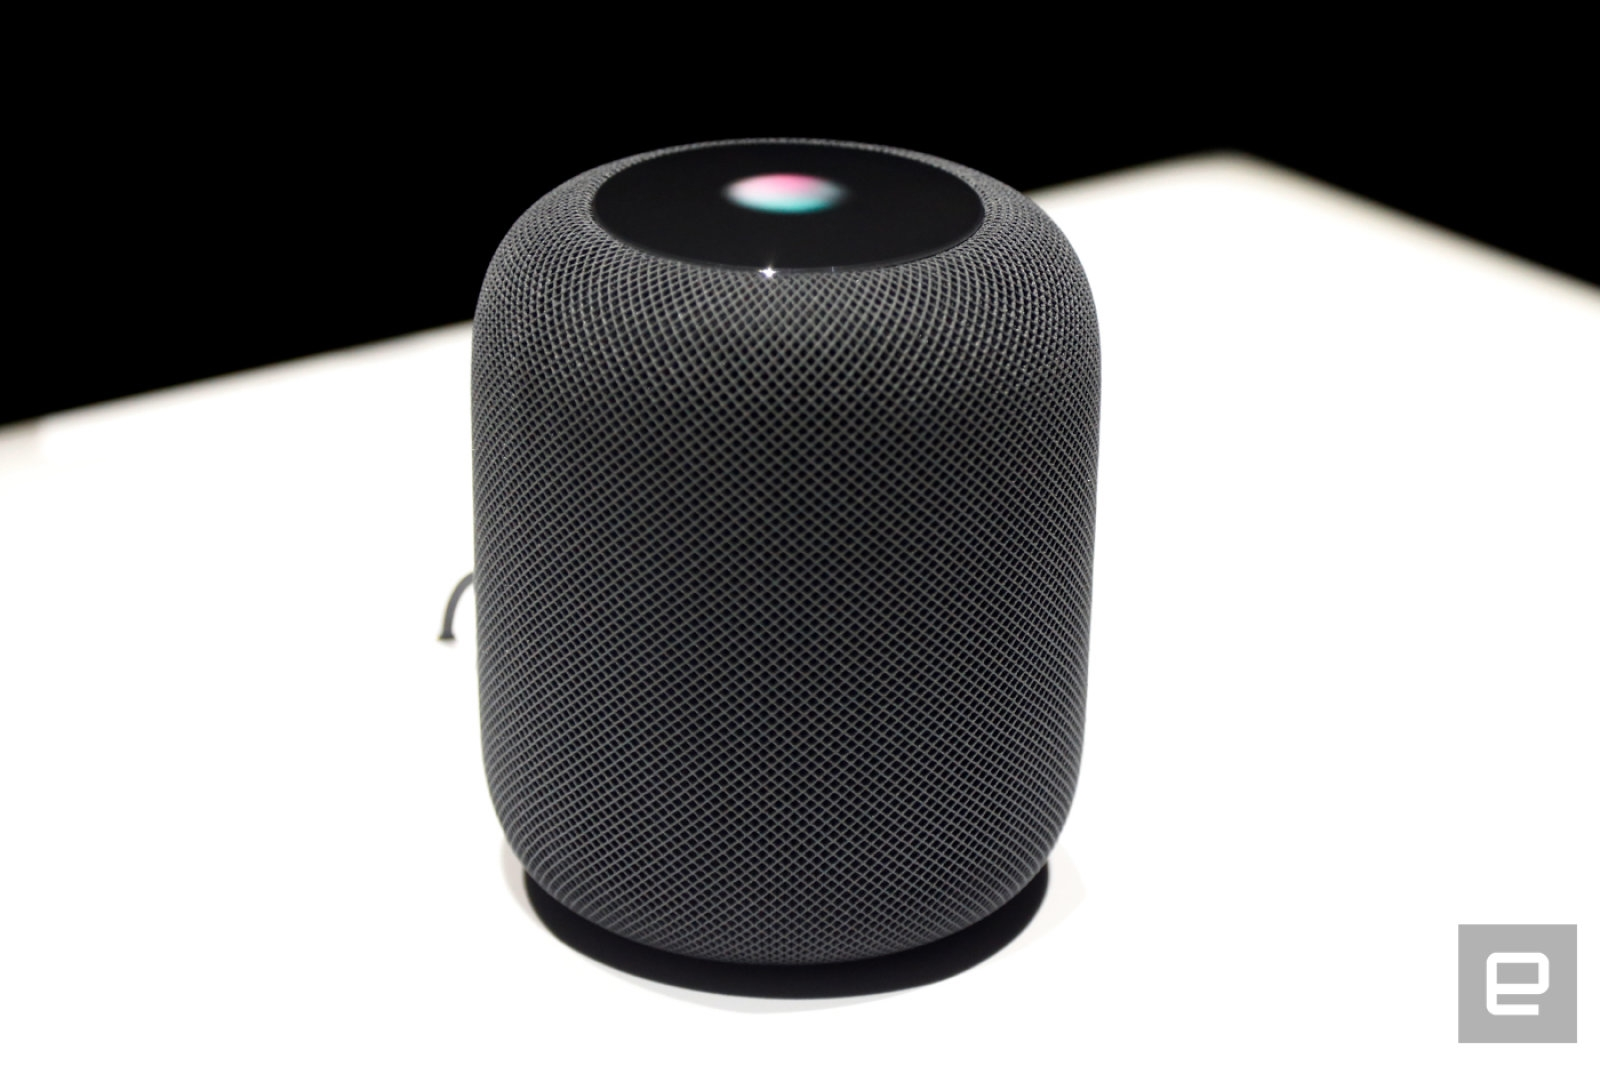 Apple may be close to launching its HomePod speaker | DeviceDaily.com